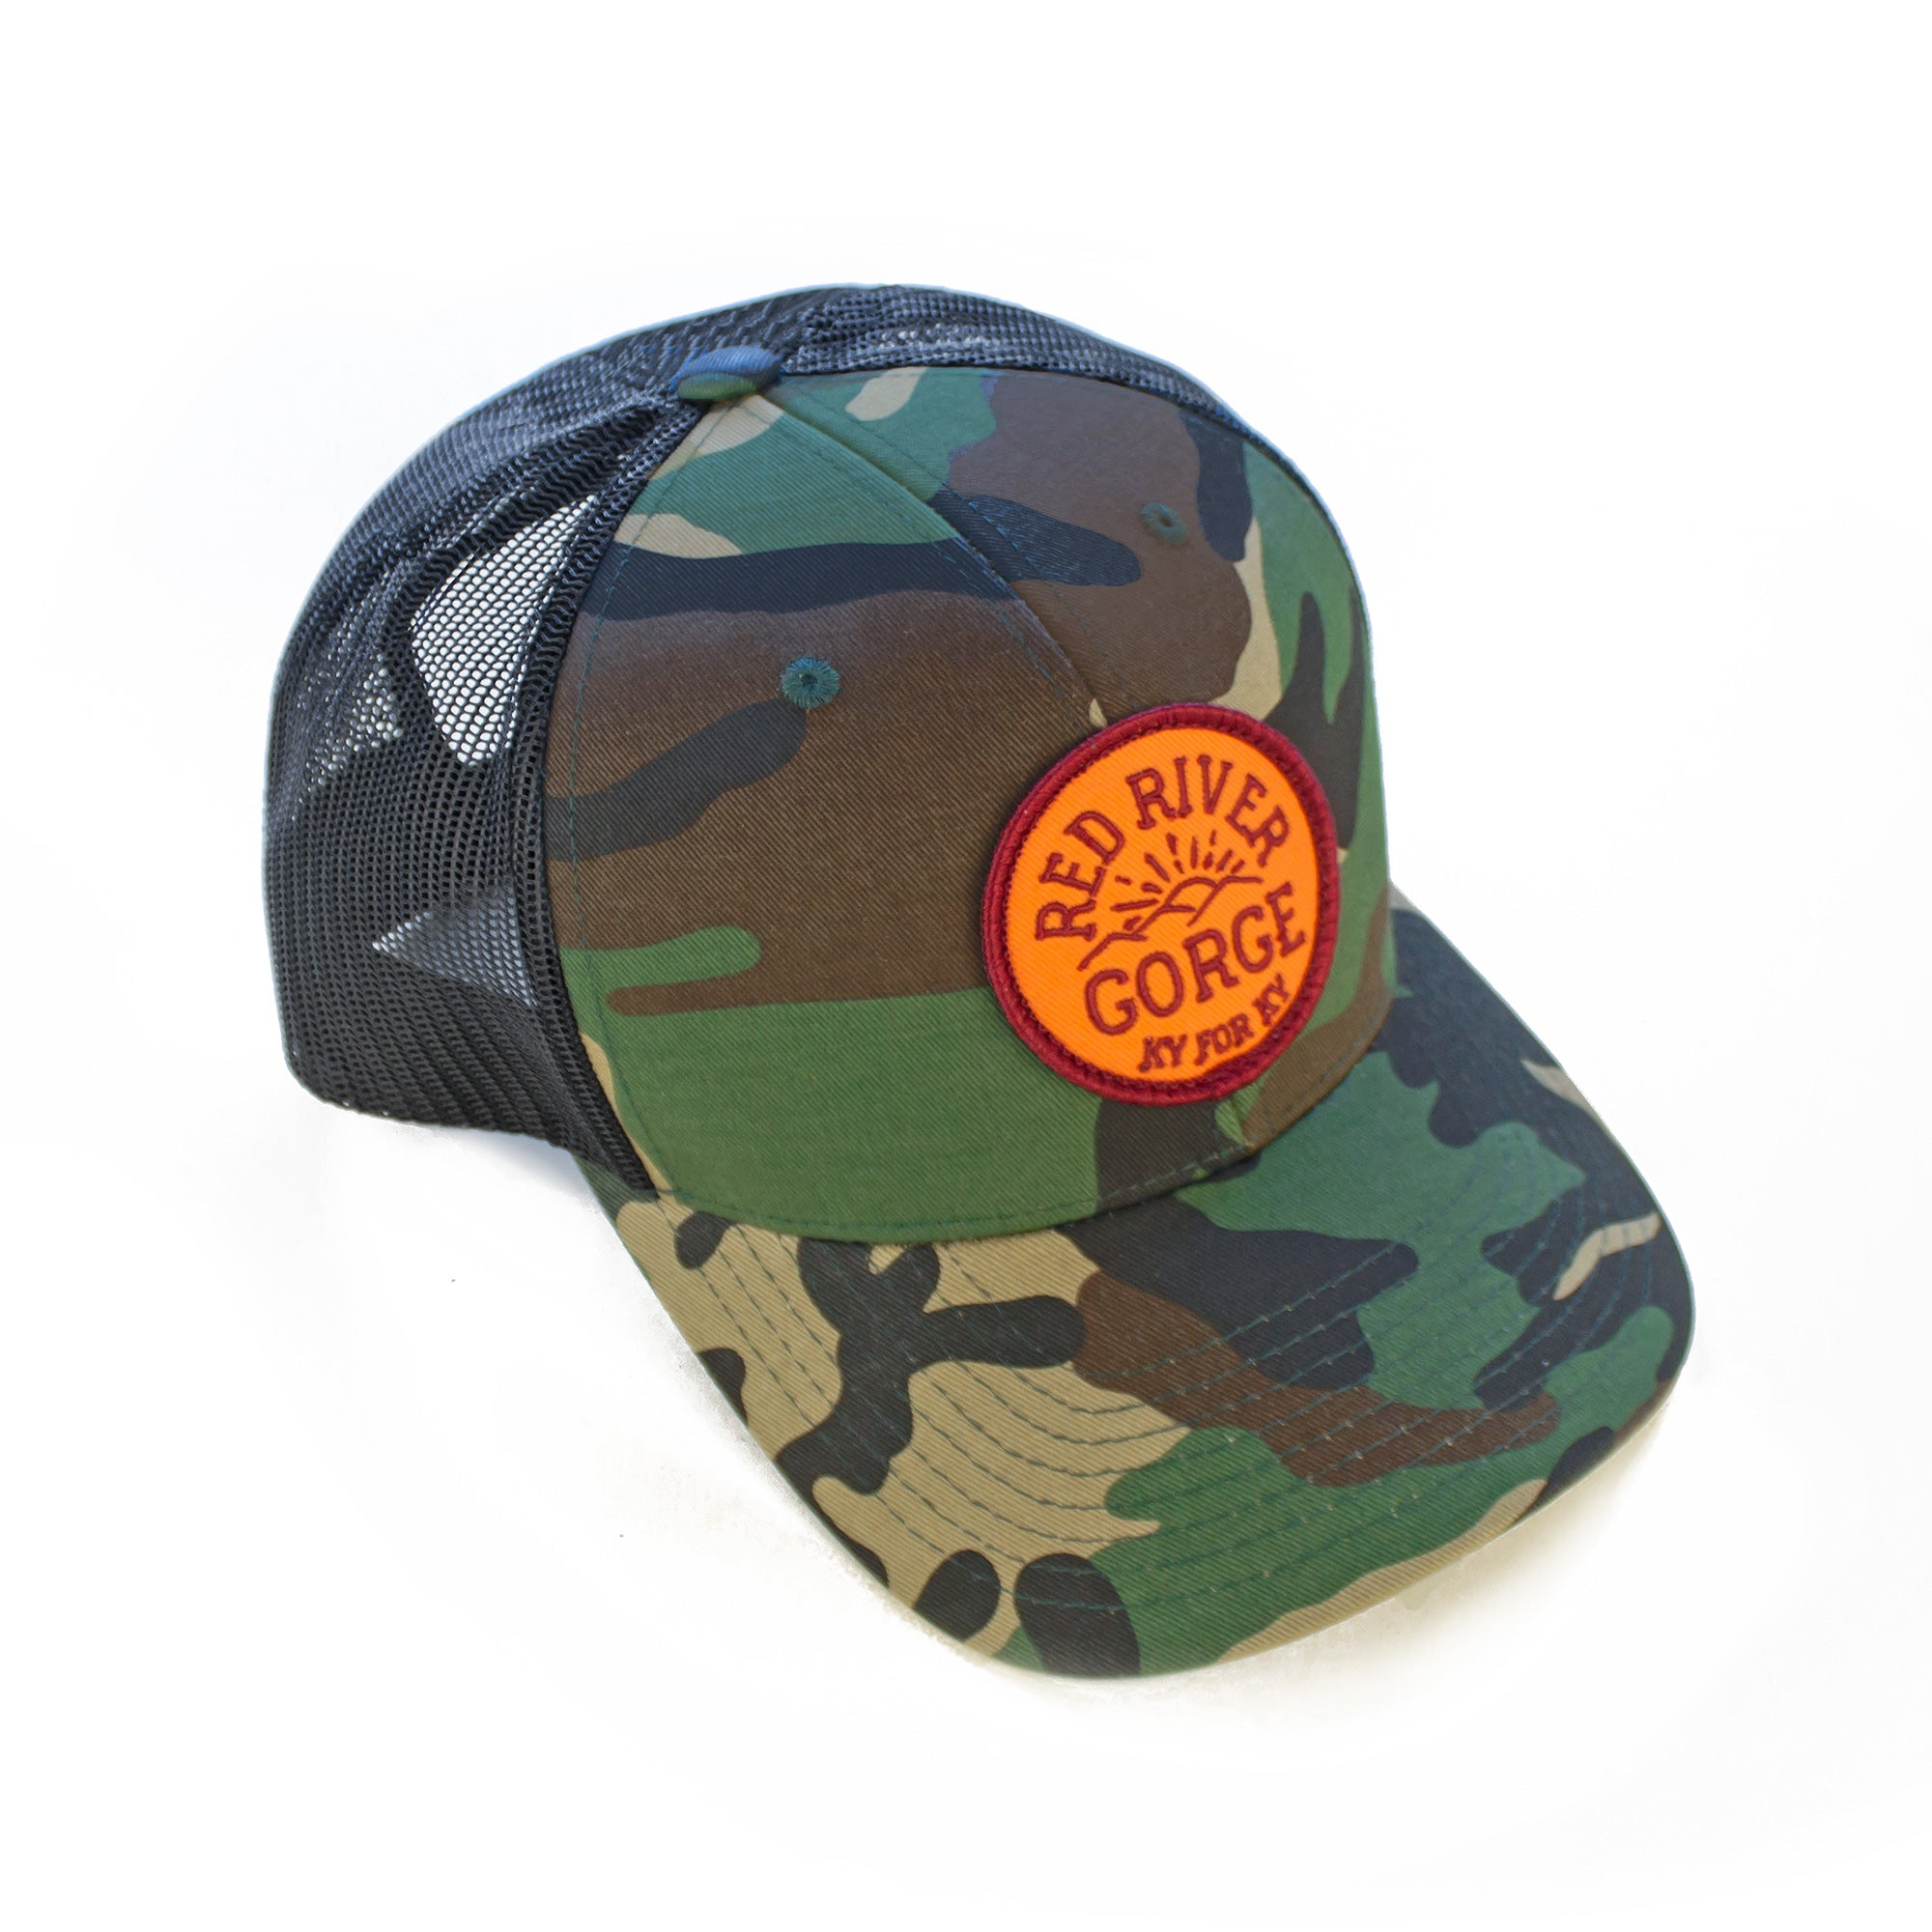 Red River Gorge Camo Trucker Hat-Hat-KY for KY Store